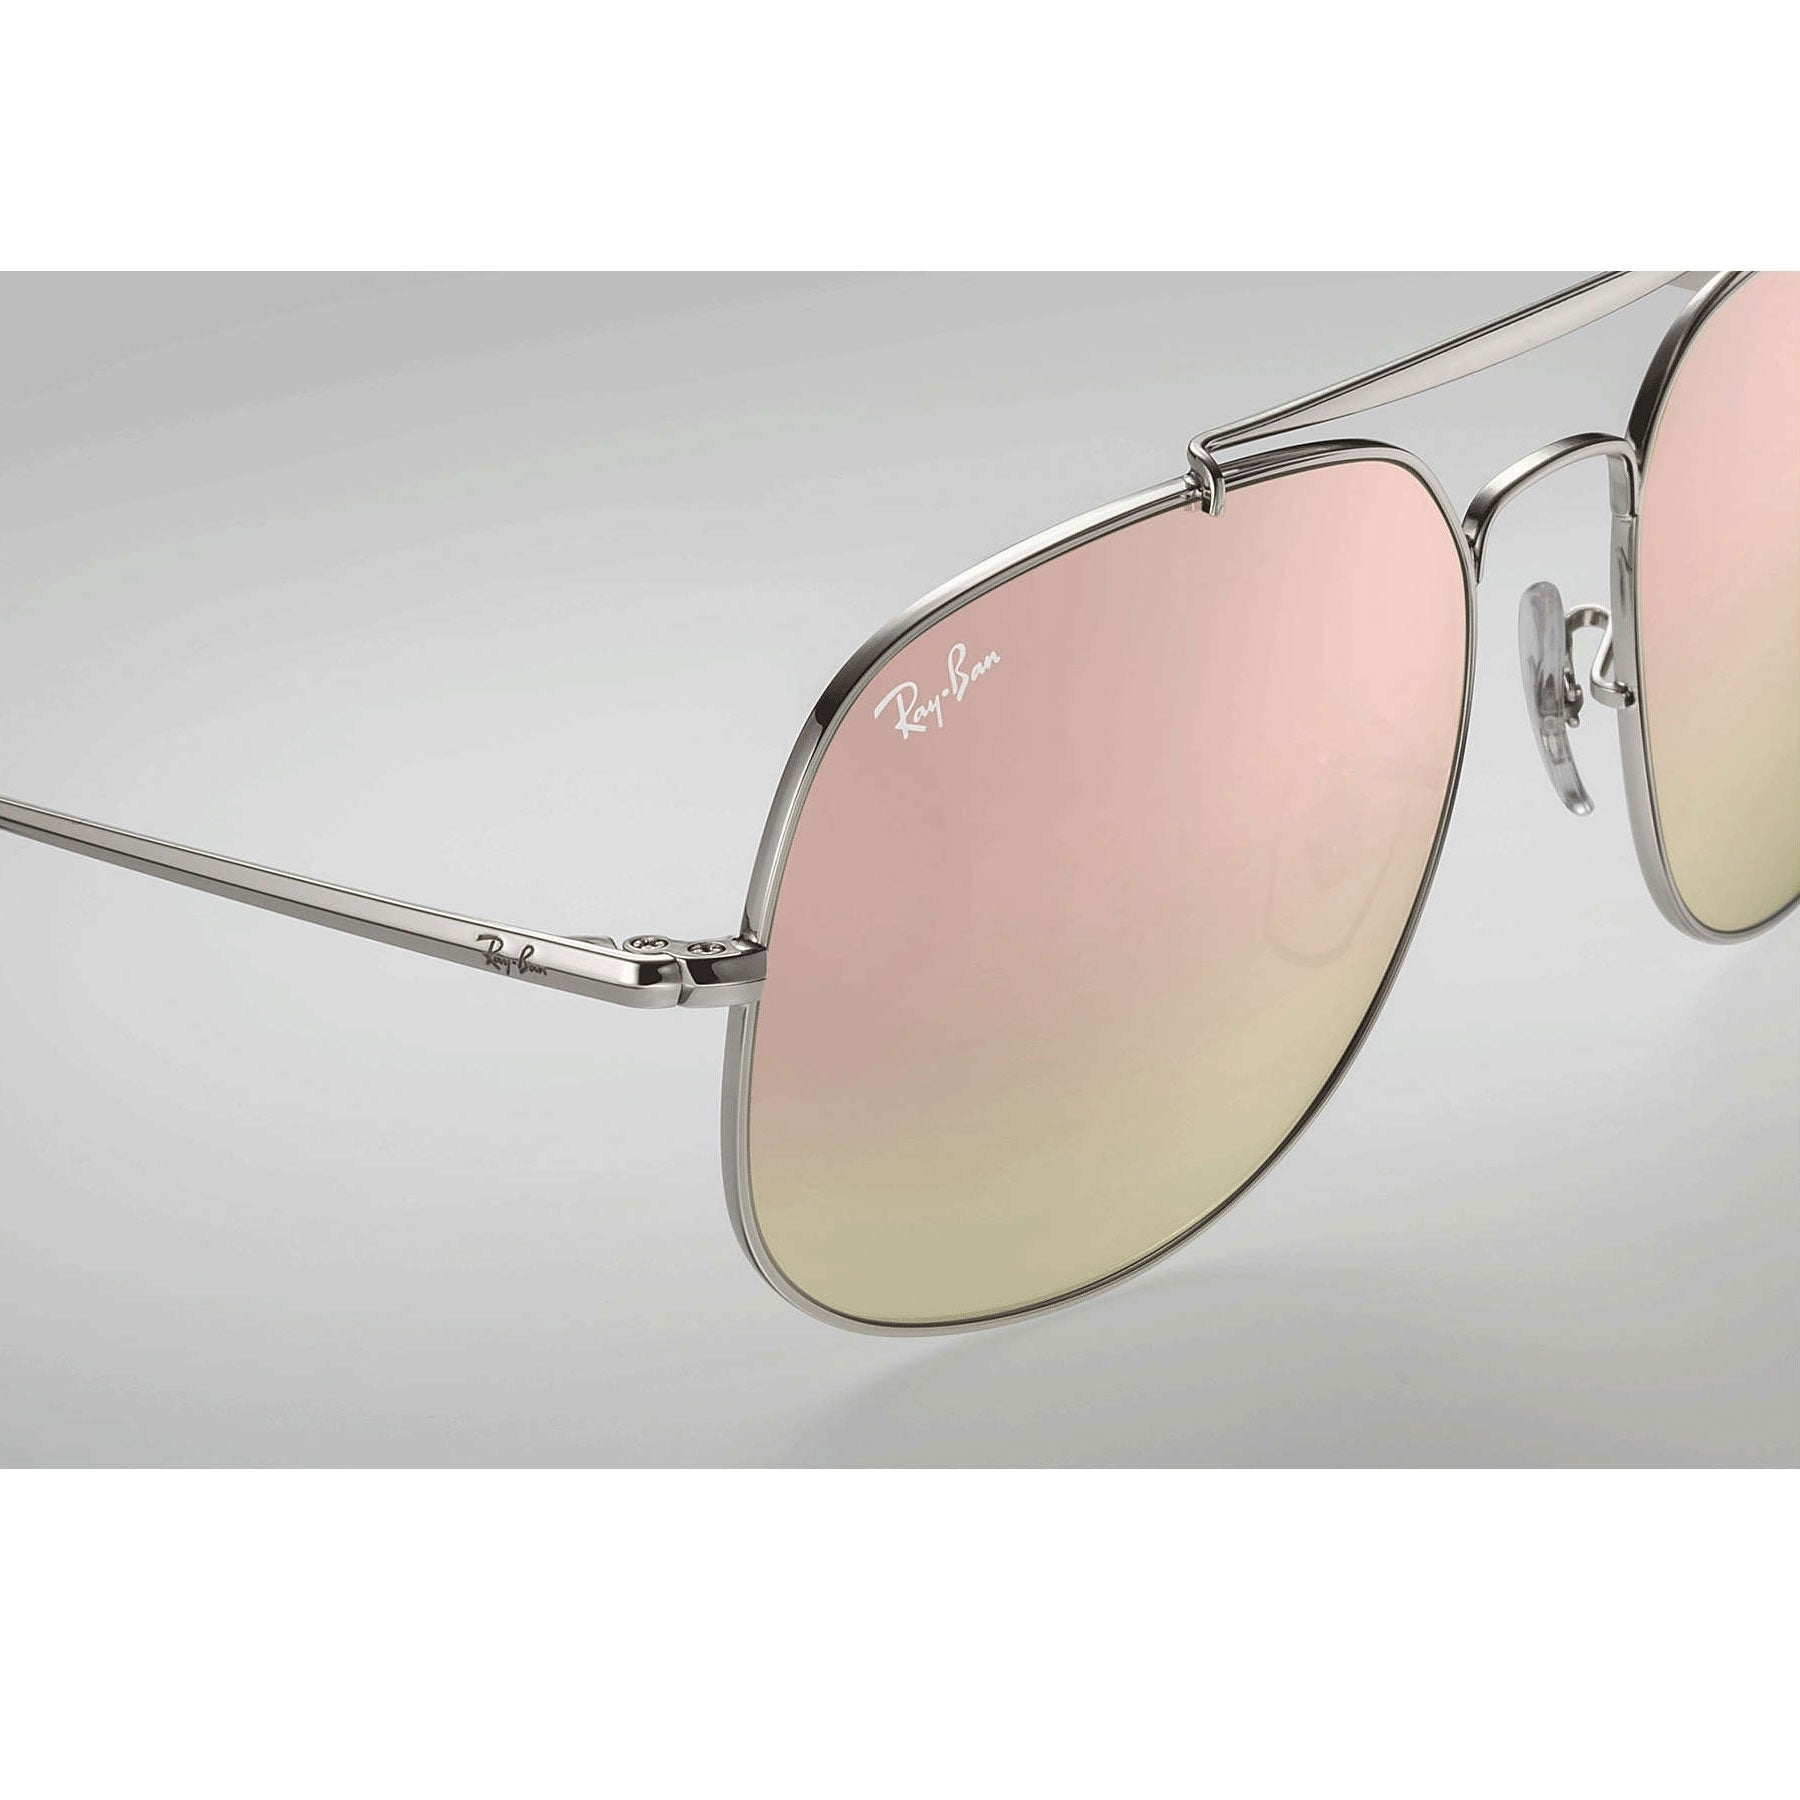 eae878f128 Shop Ray-Ban RB3561 General Sunglasses Silver  Copper Gradient Flash 57mm -  Free Shipping Today - Overstock - 20602402